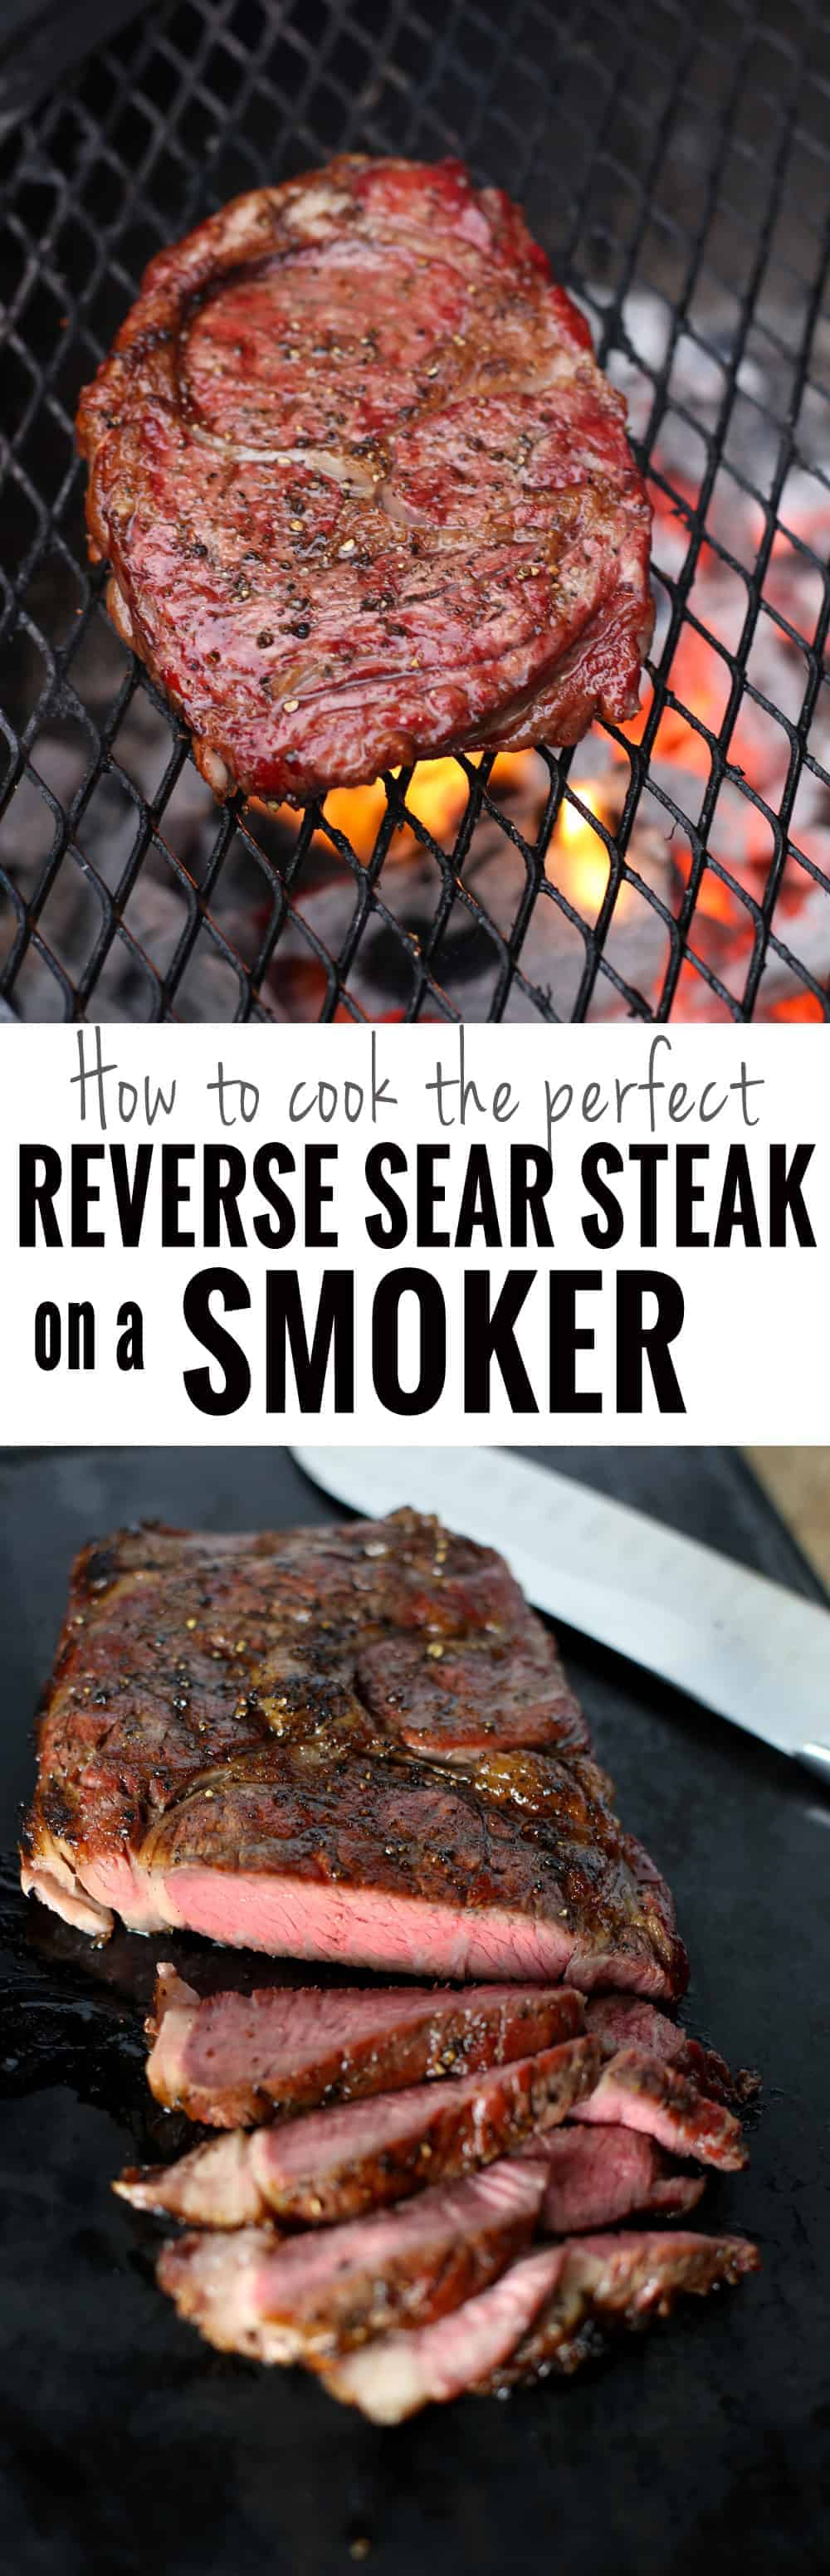 The Perfect Reverse Sear Steak using your Smoker. Using this method, you can get the perfect medium rare steak at home using your smoker, then finishing on a hot grill